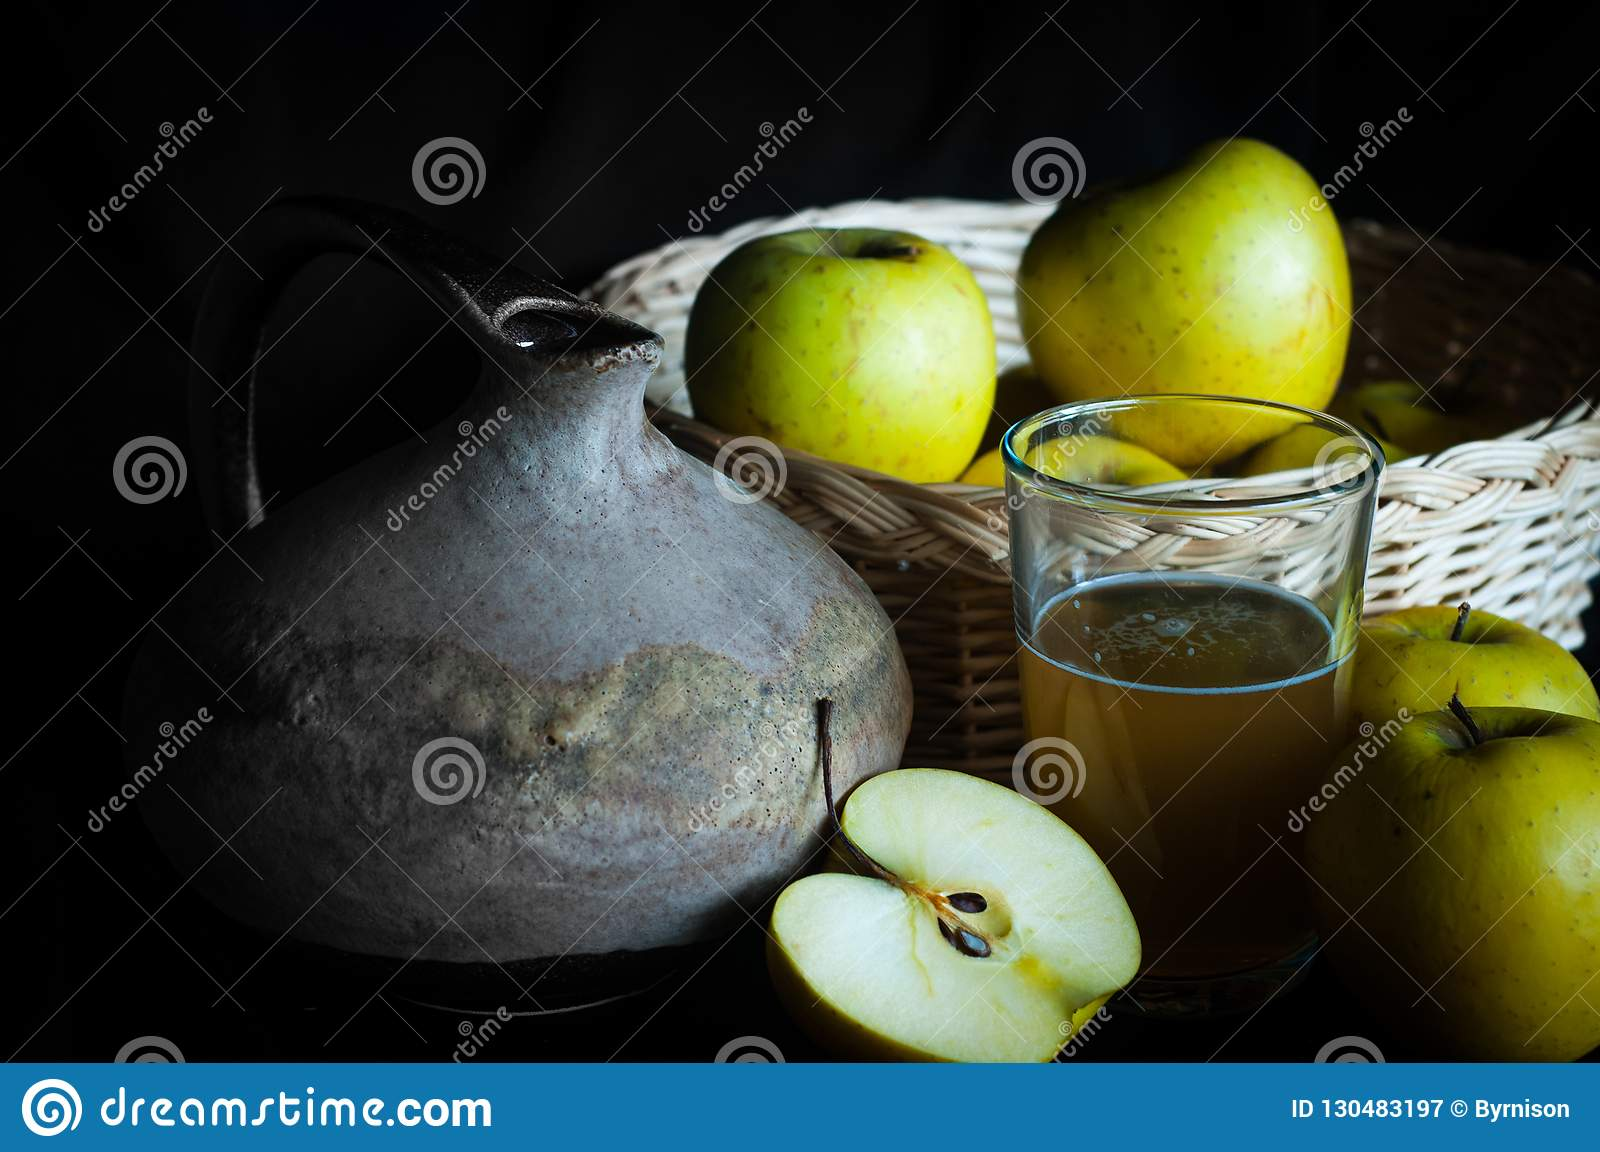 Homemade apple juice with ingredients and rustic jug